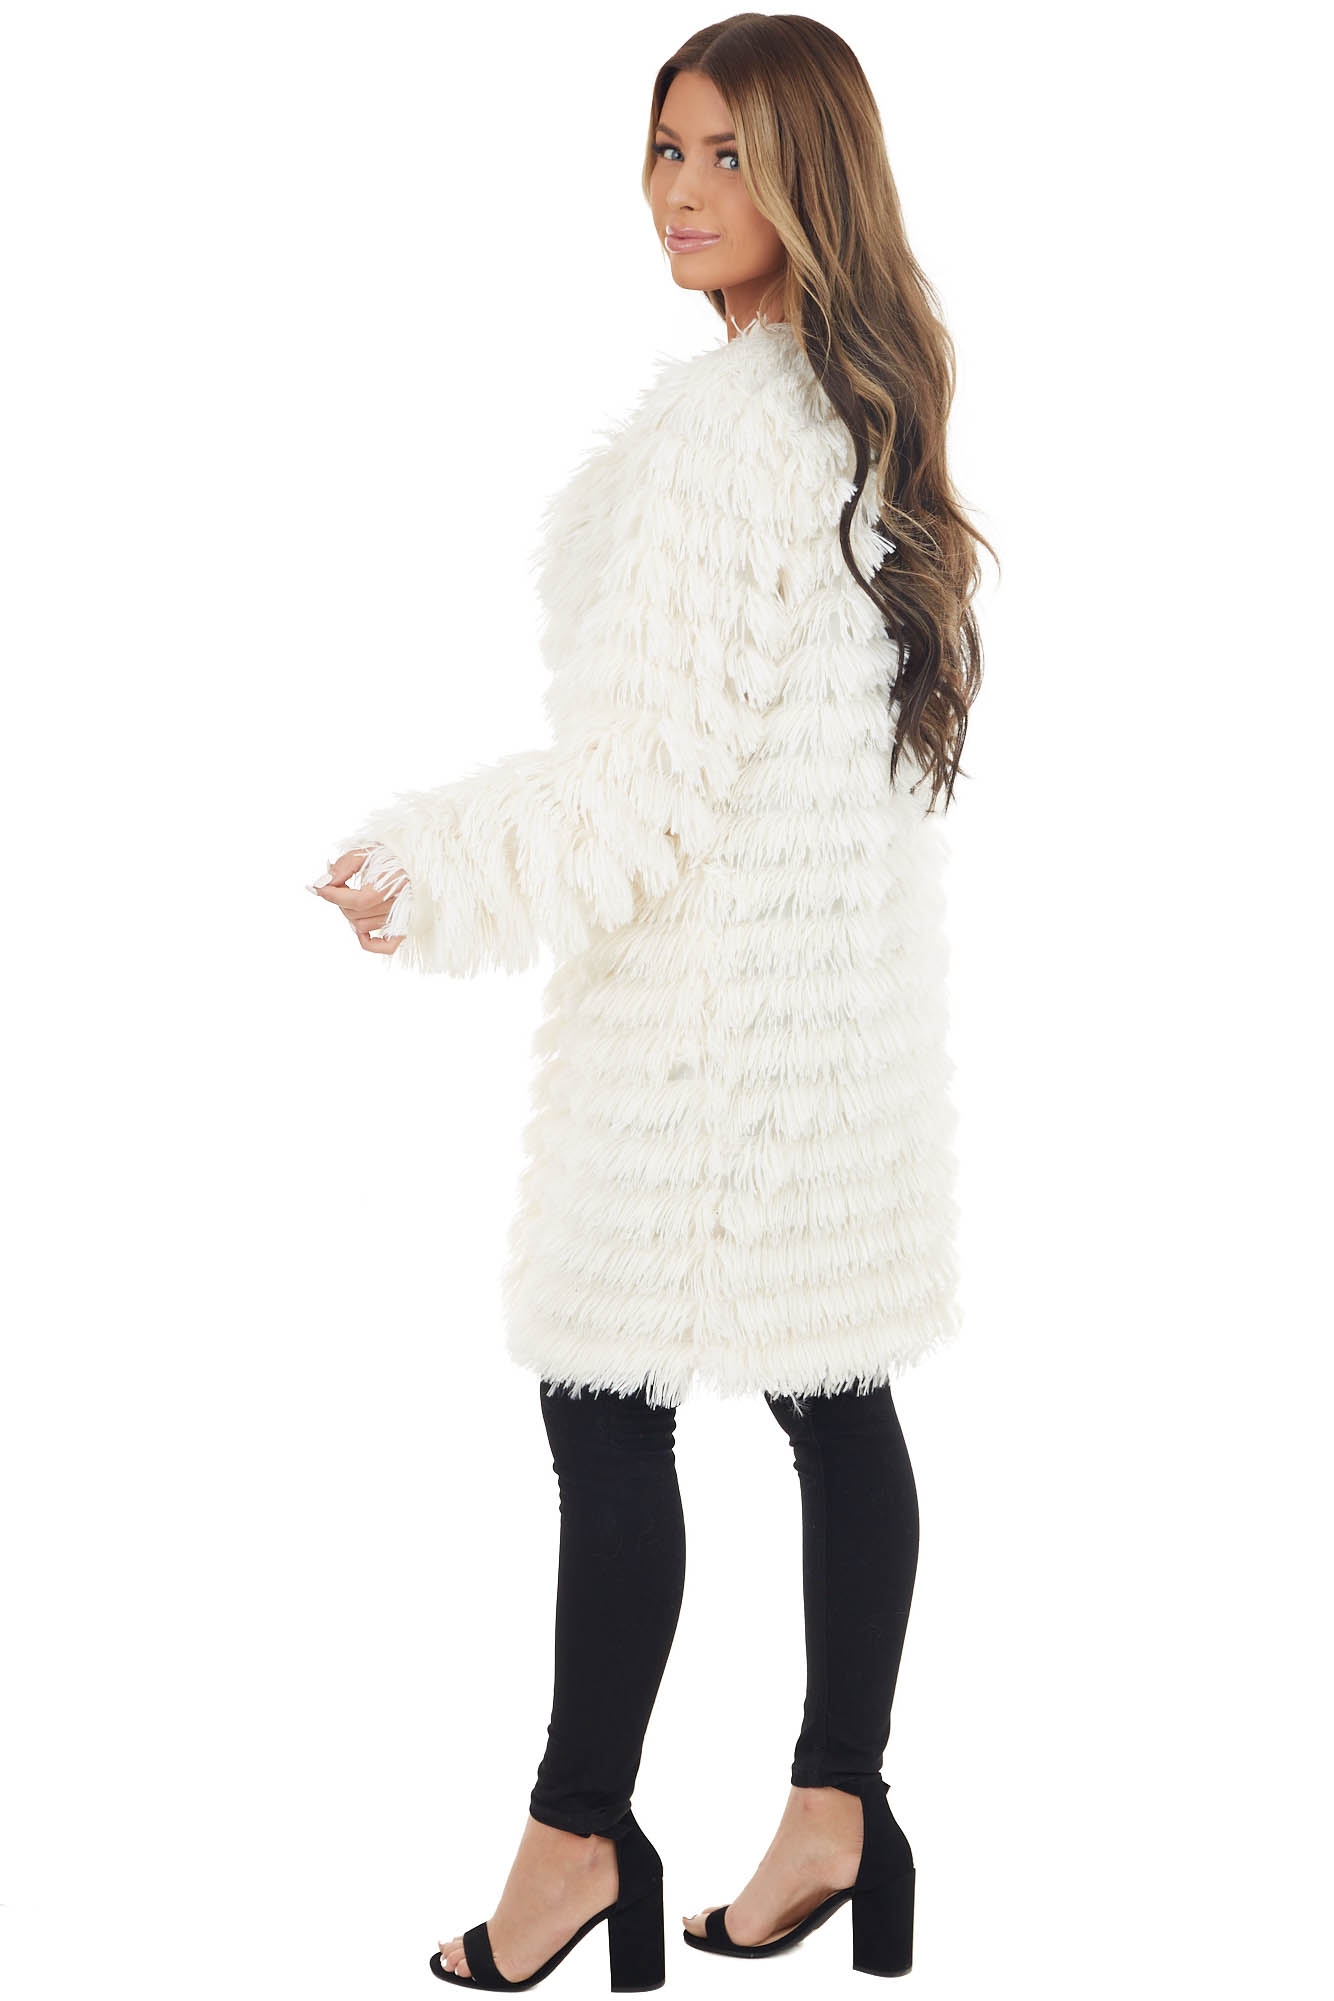 Ivory Faux Fur Long Sleeve Jacket with Front Pockets